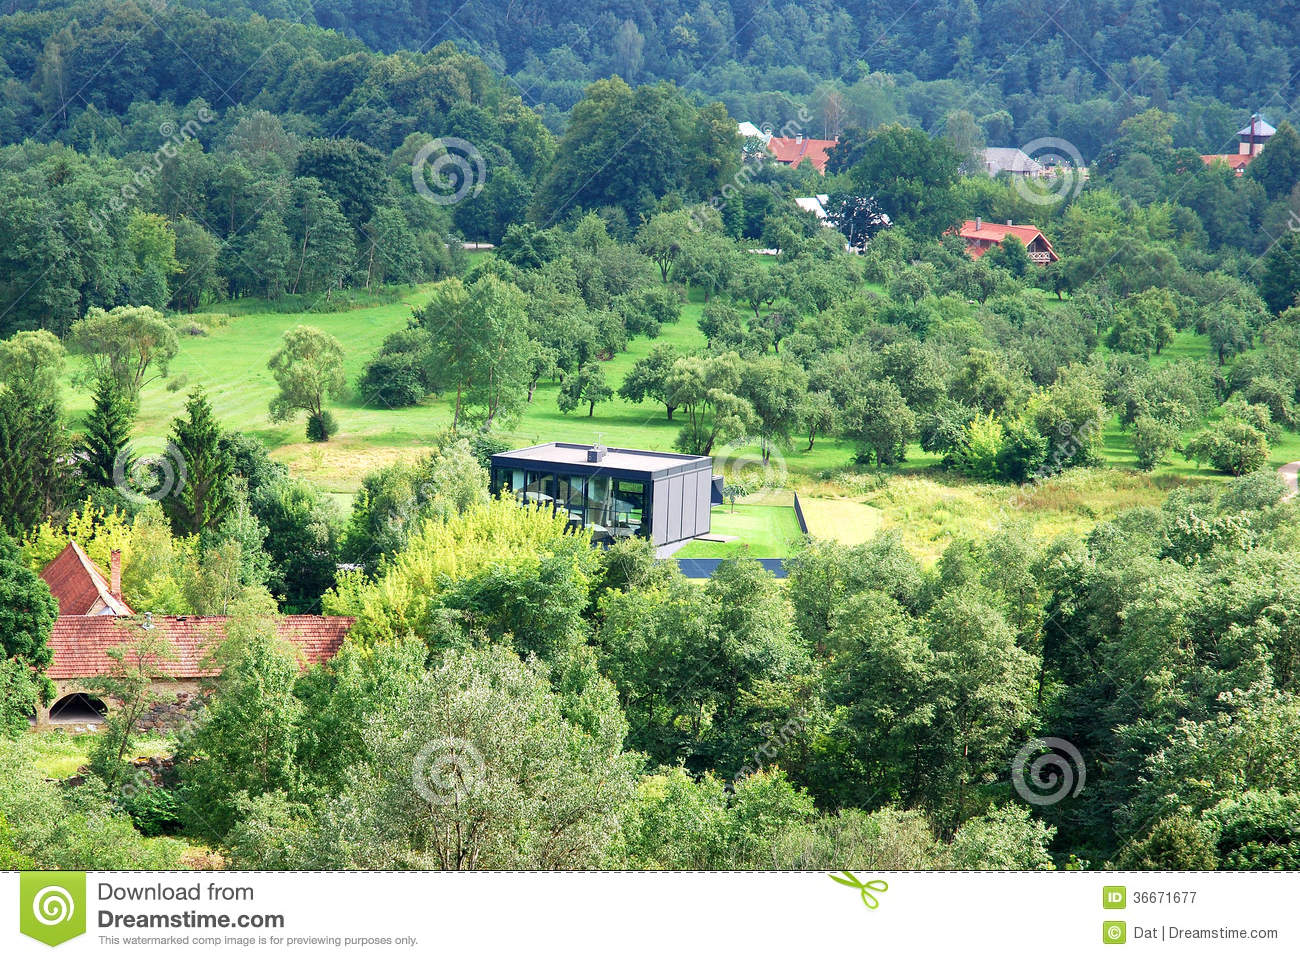 analysis of environment in lithuania The bti combines text analysis and numerical assessments  the lithuanian  population's awareness of environmental protection has become more balanced .